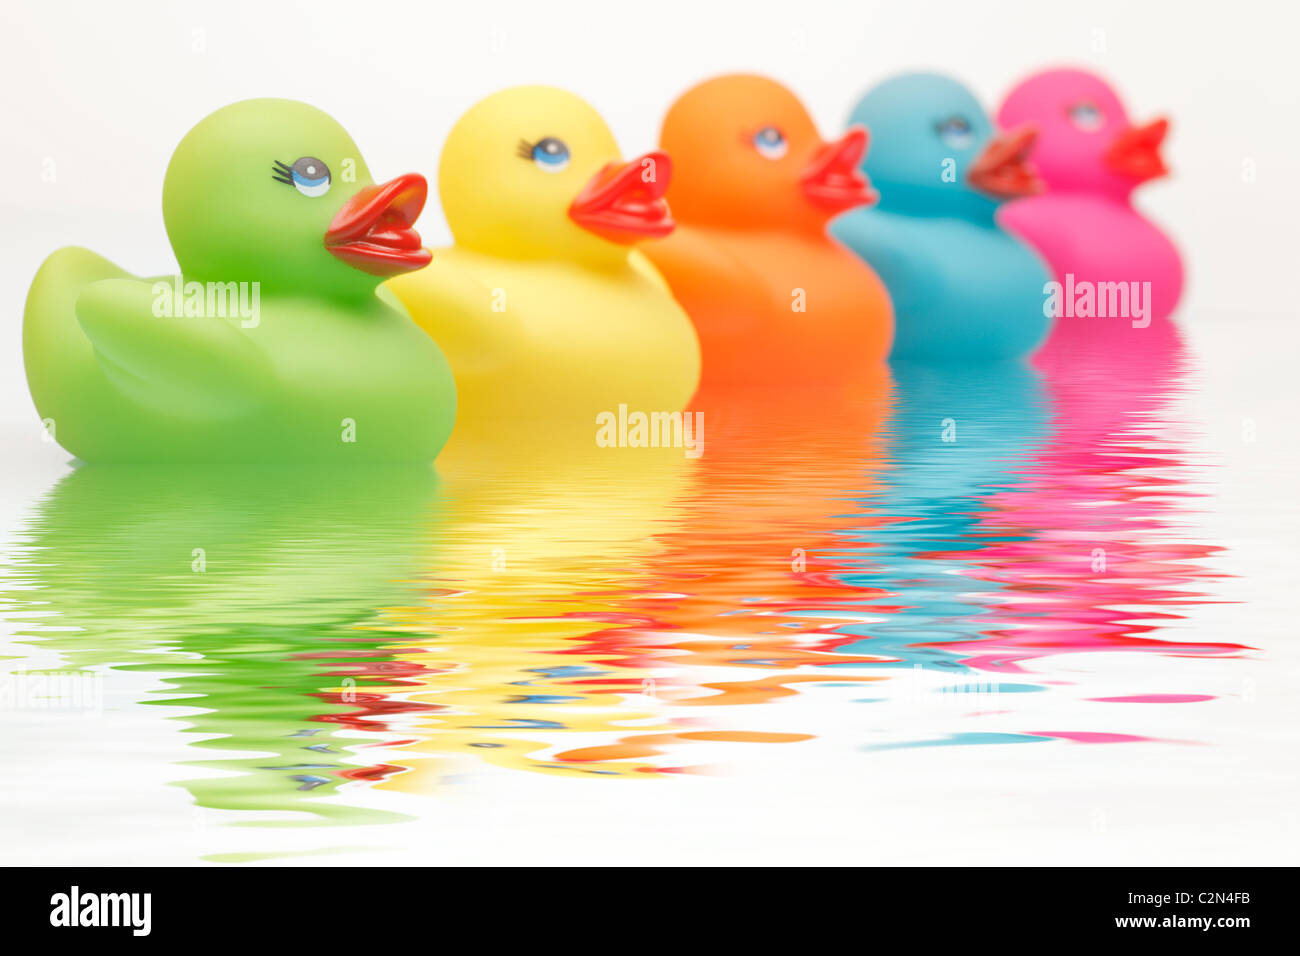 Colourful Rubber Ducks with water ripples - Stock Image